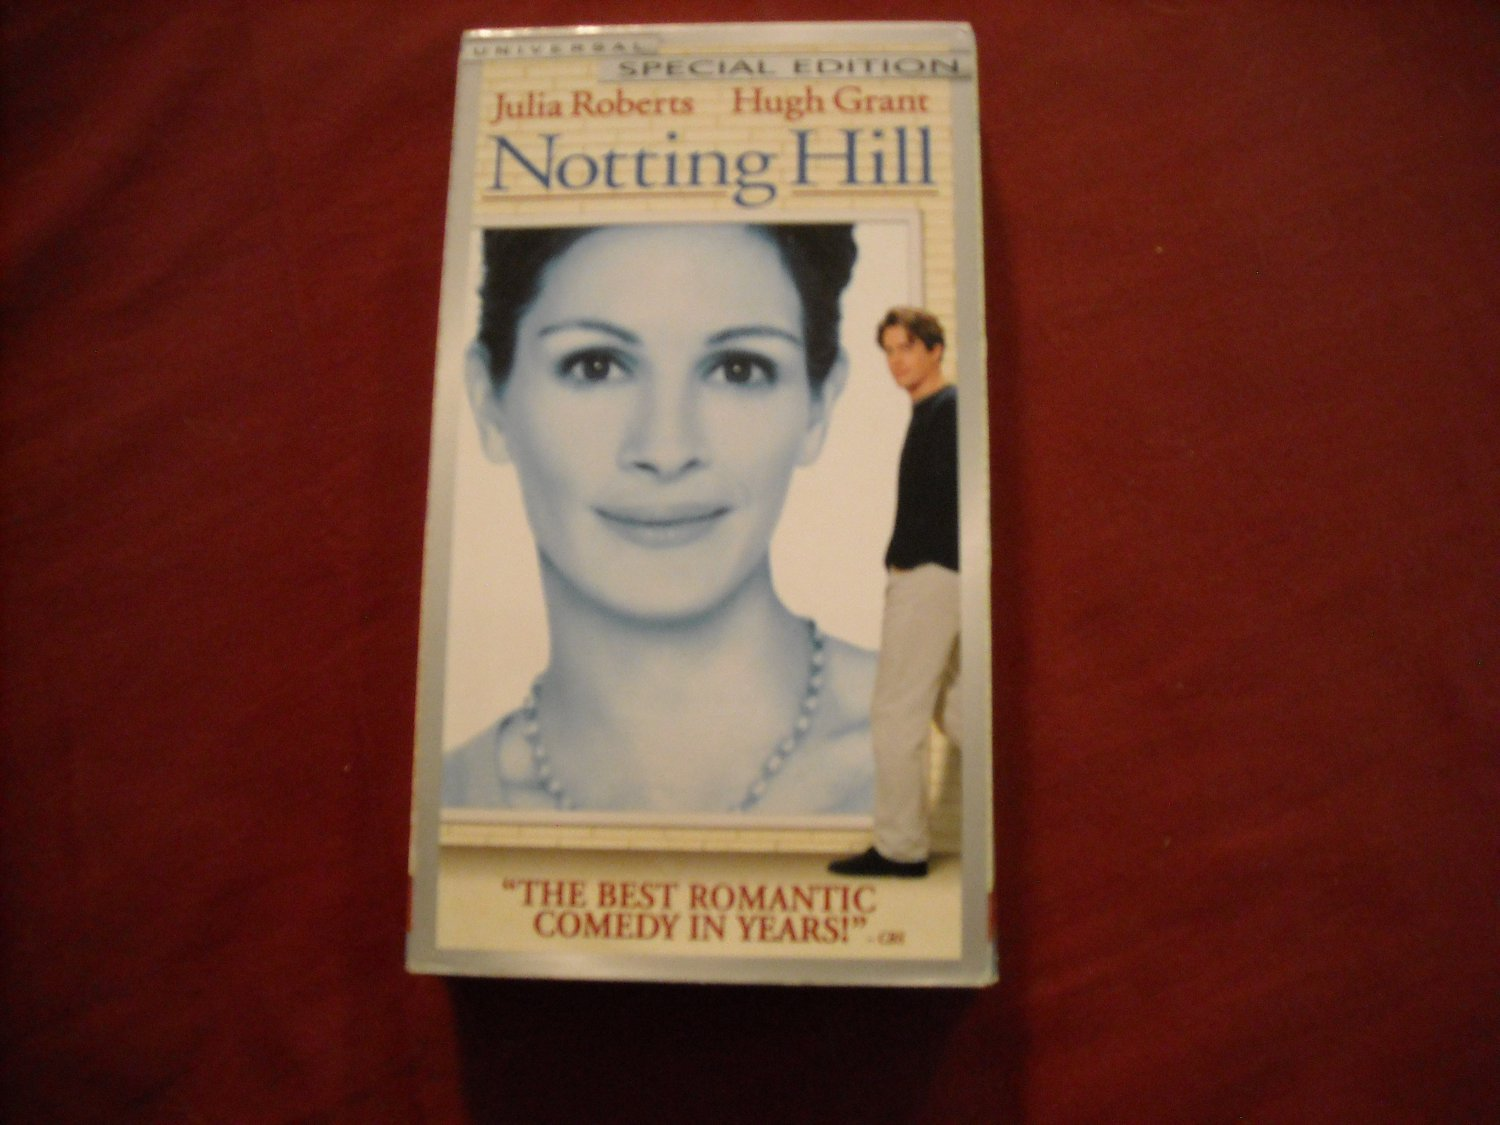 Notting Hill - Universal Special Edition (2000) Julia Roberts Hugh Grant Rated PG-13